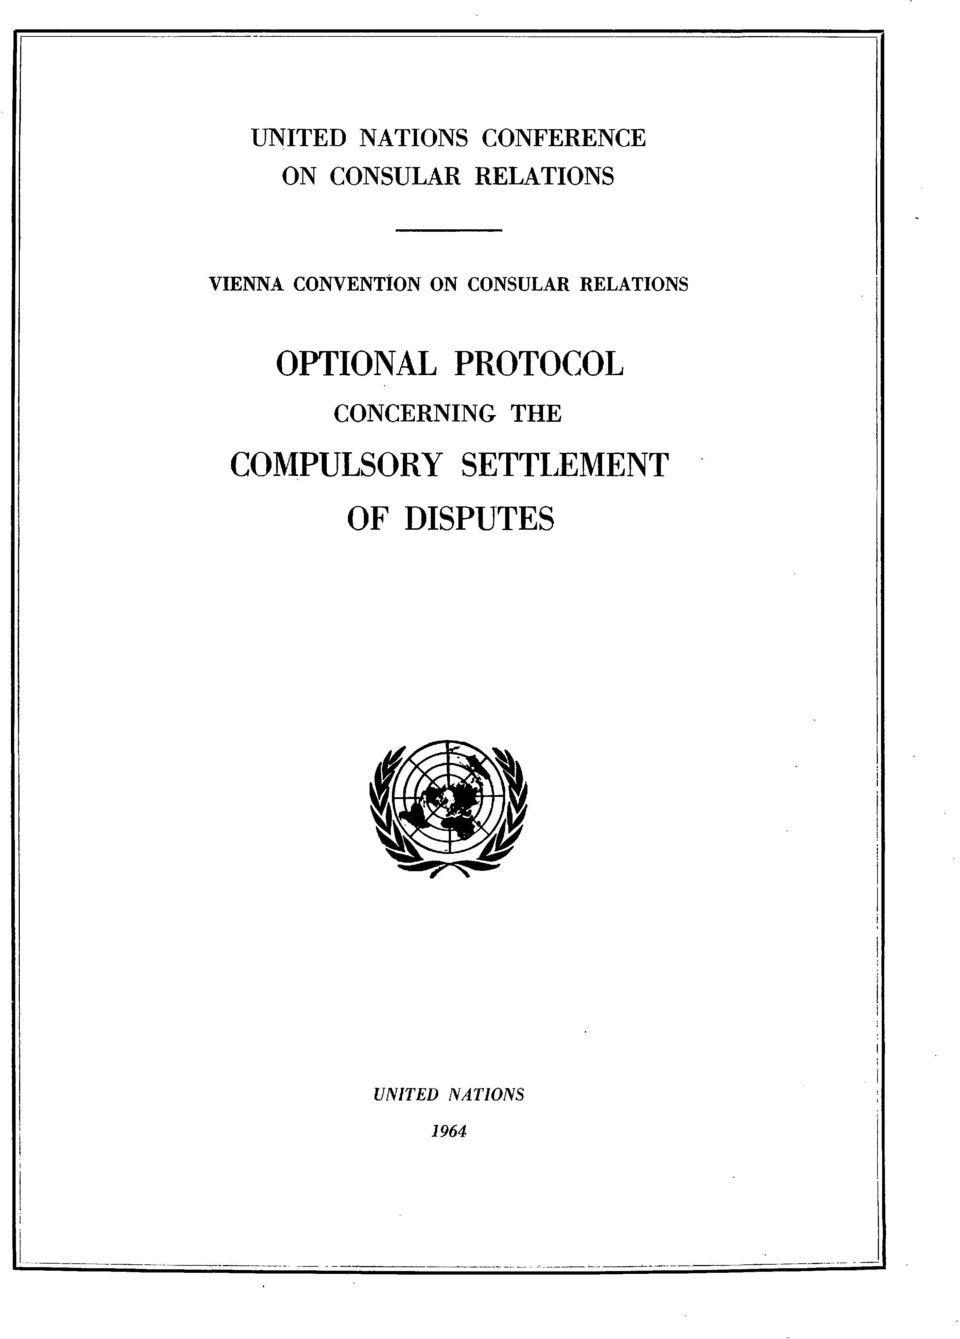 RELATIONS OPTIONAL PROTOCOL CONCERNING THE